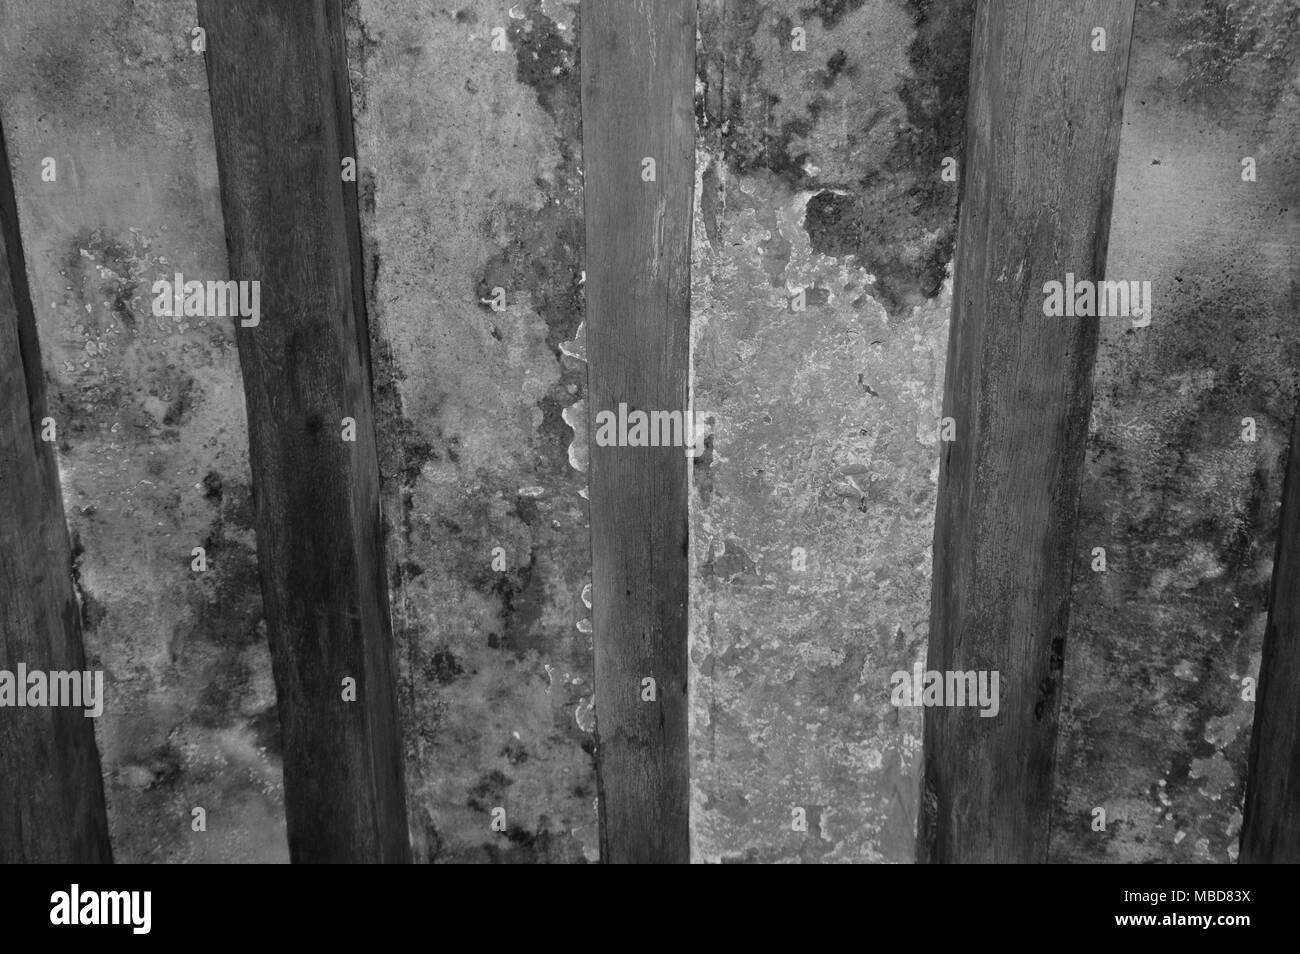 Zoom on an old room ceiling - Stock Image